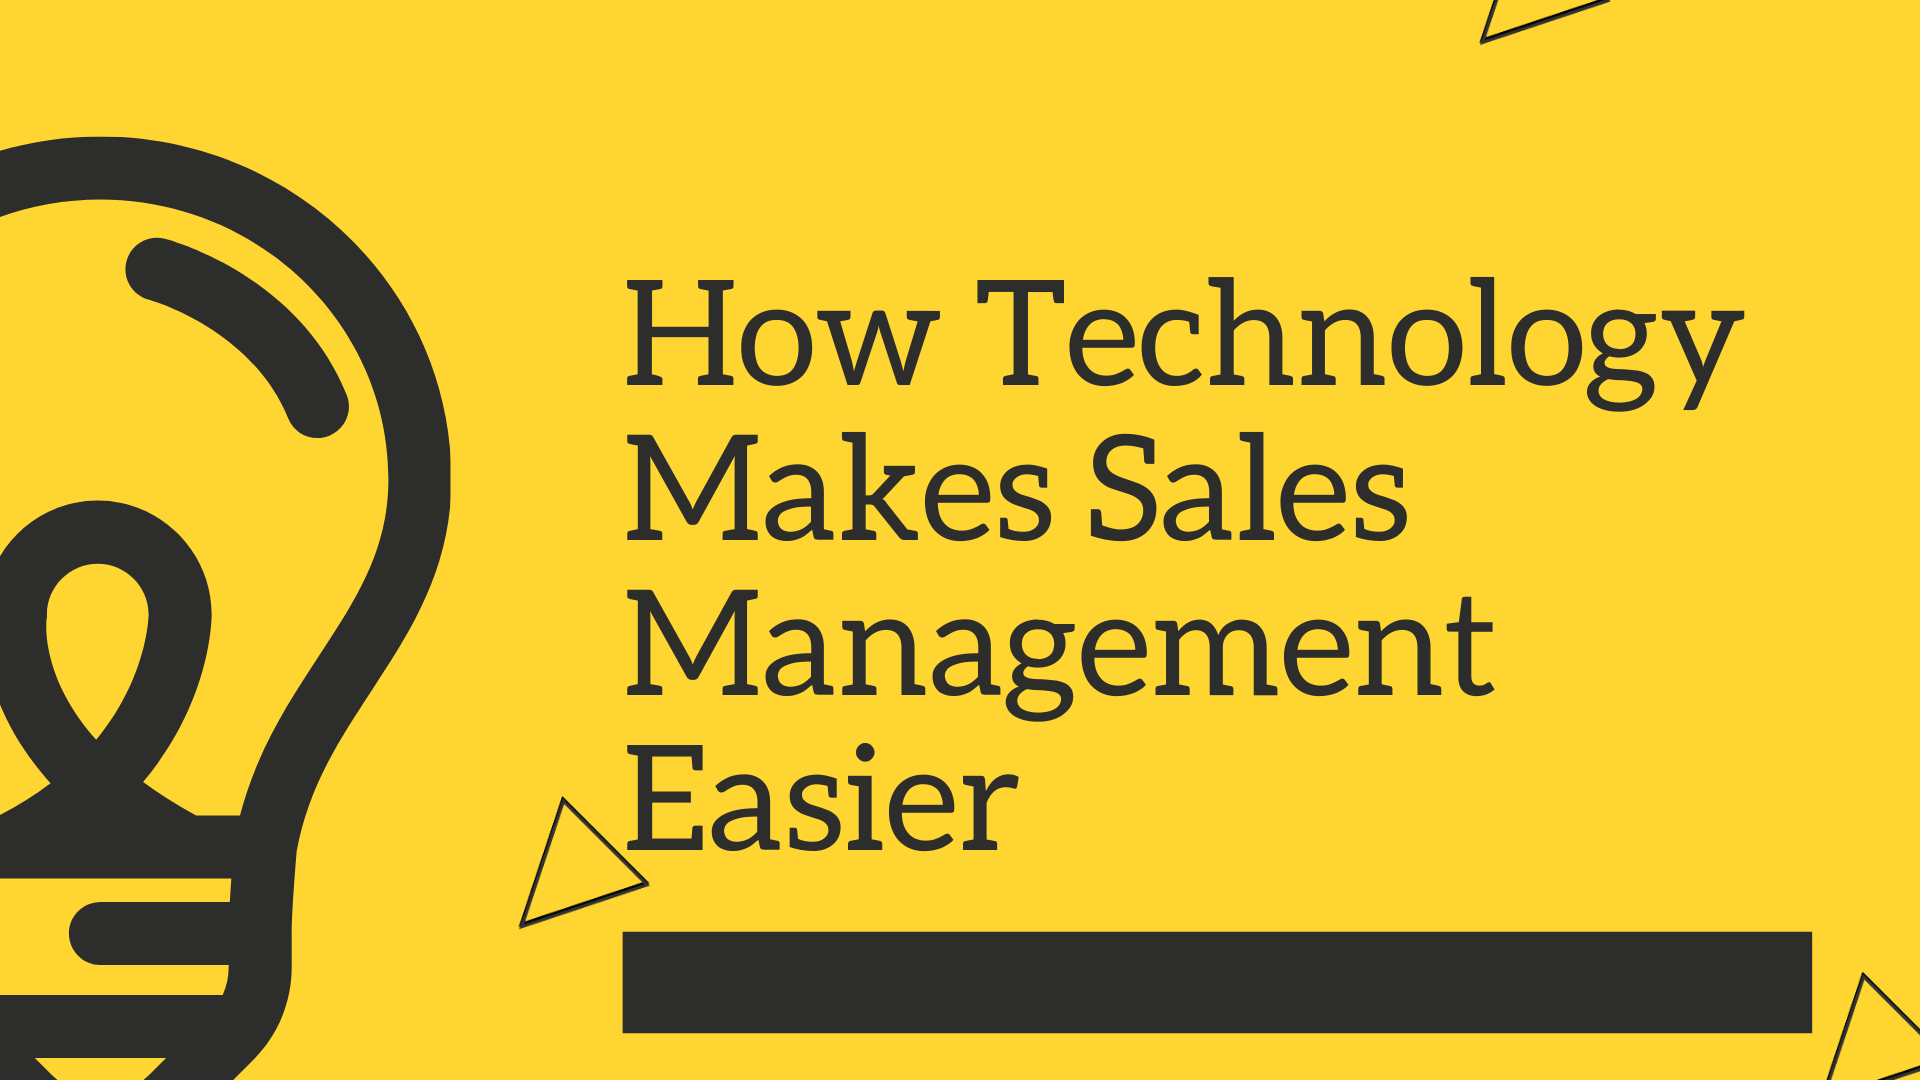 How Technology Makes Sales Management Easier (1)